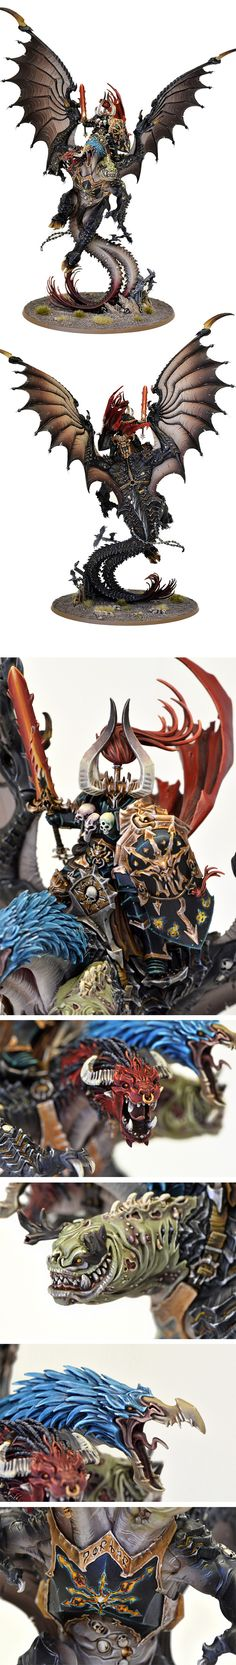 Archaon, The Everchosen...except Slaanesh is not represented...still a great work, TA!